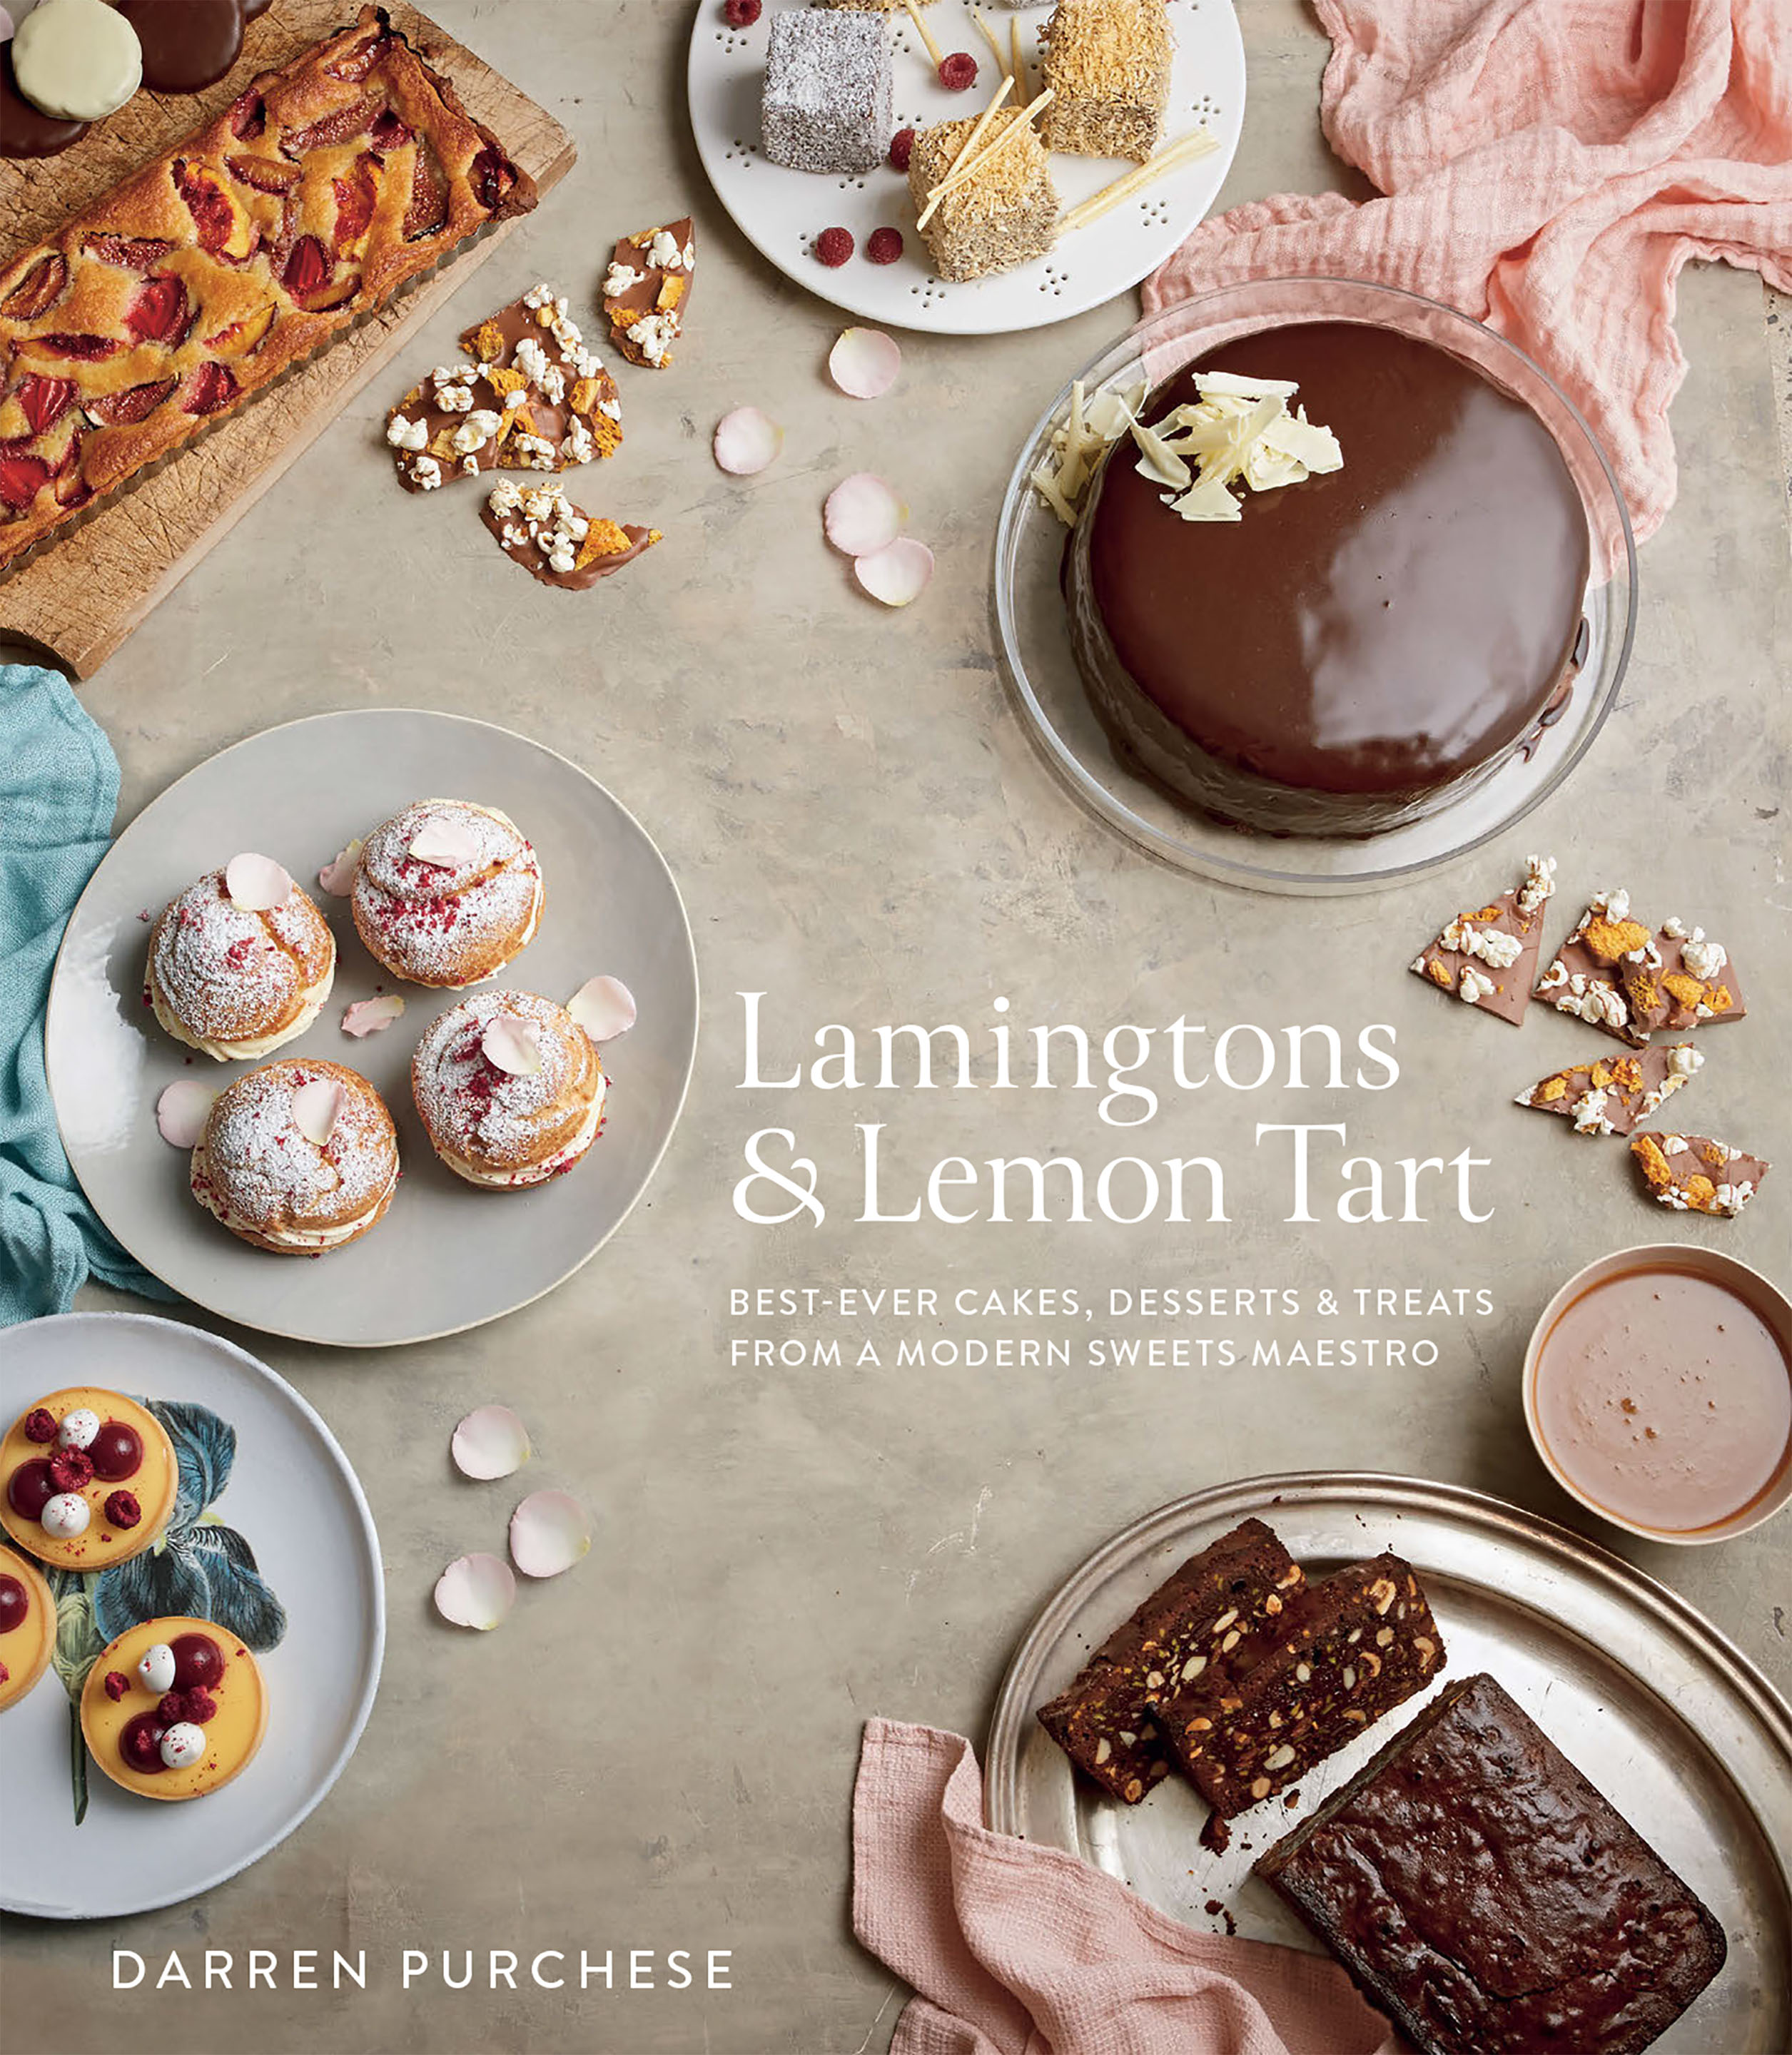 Lamingtons & lemon tart